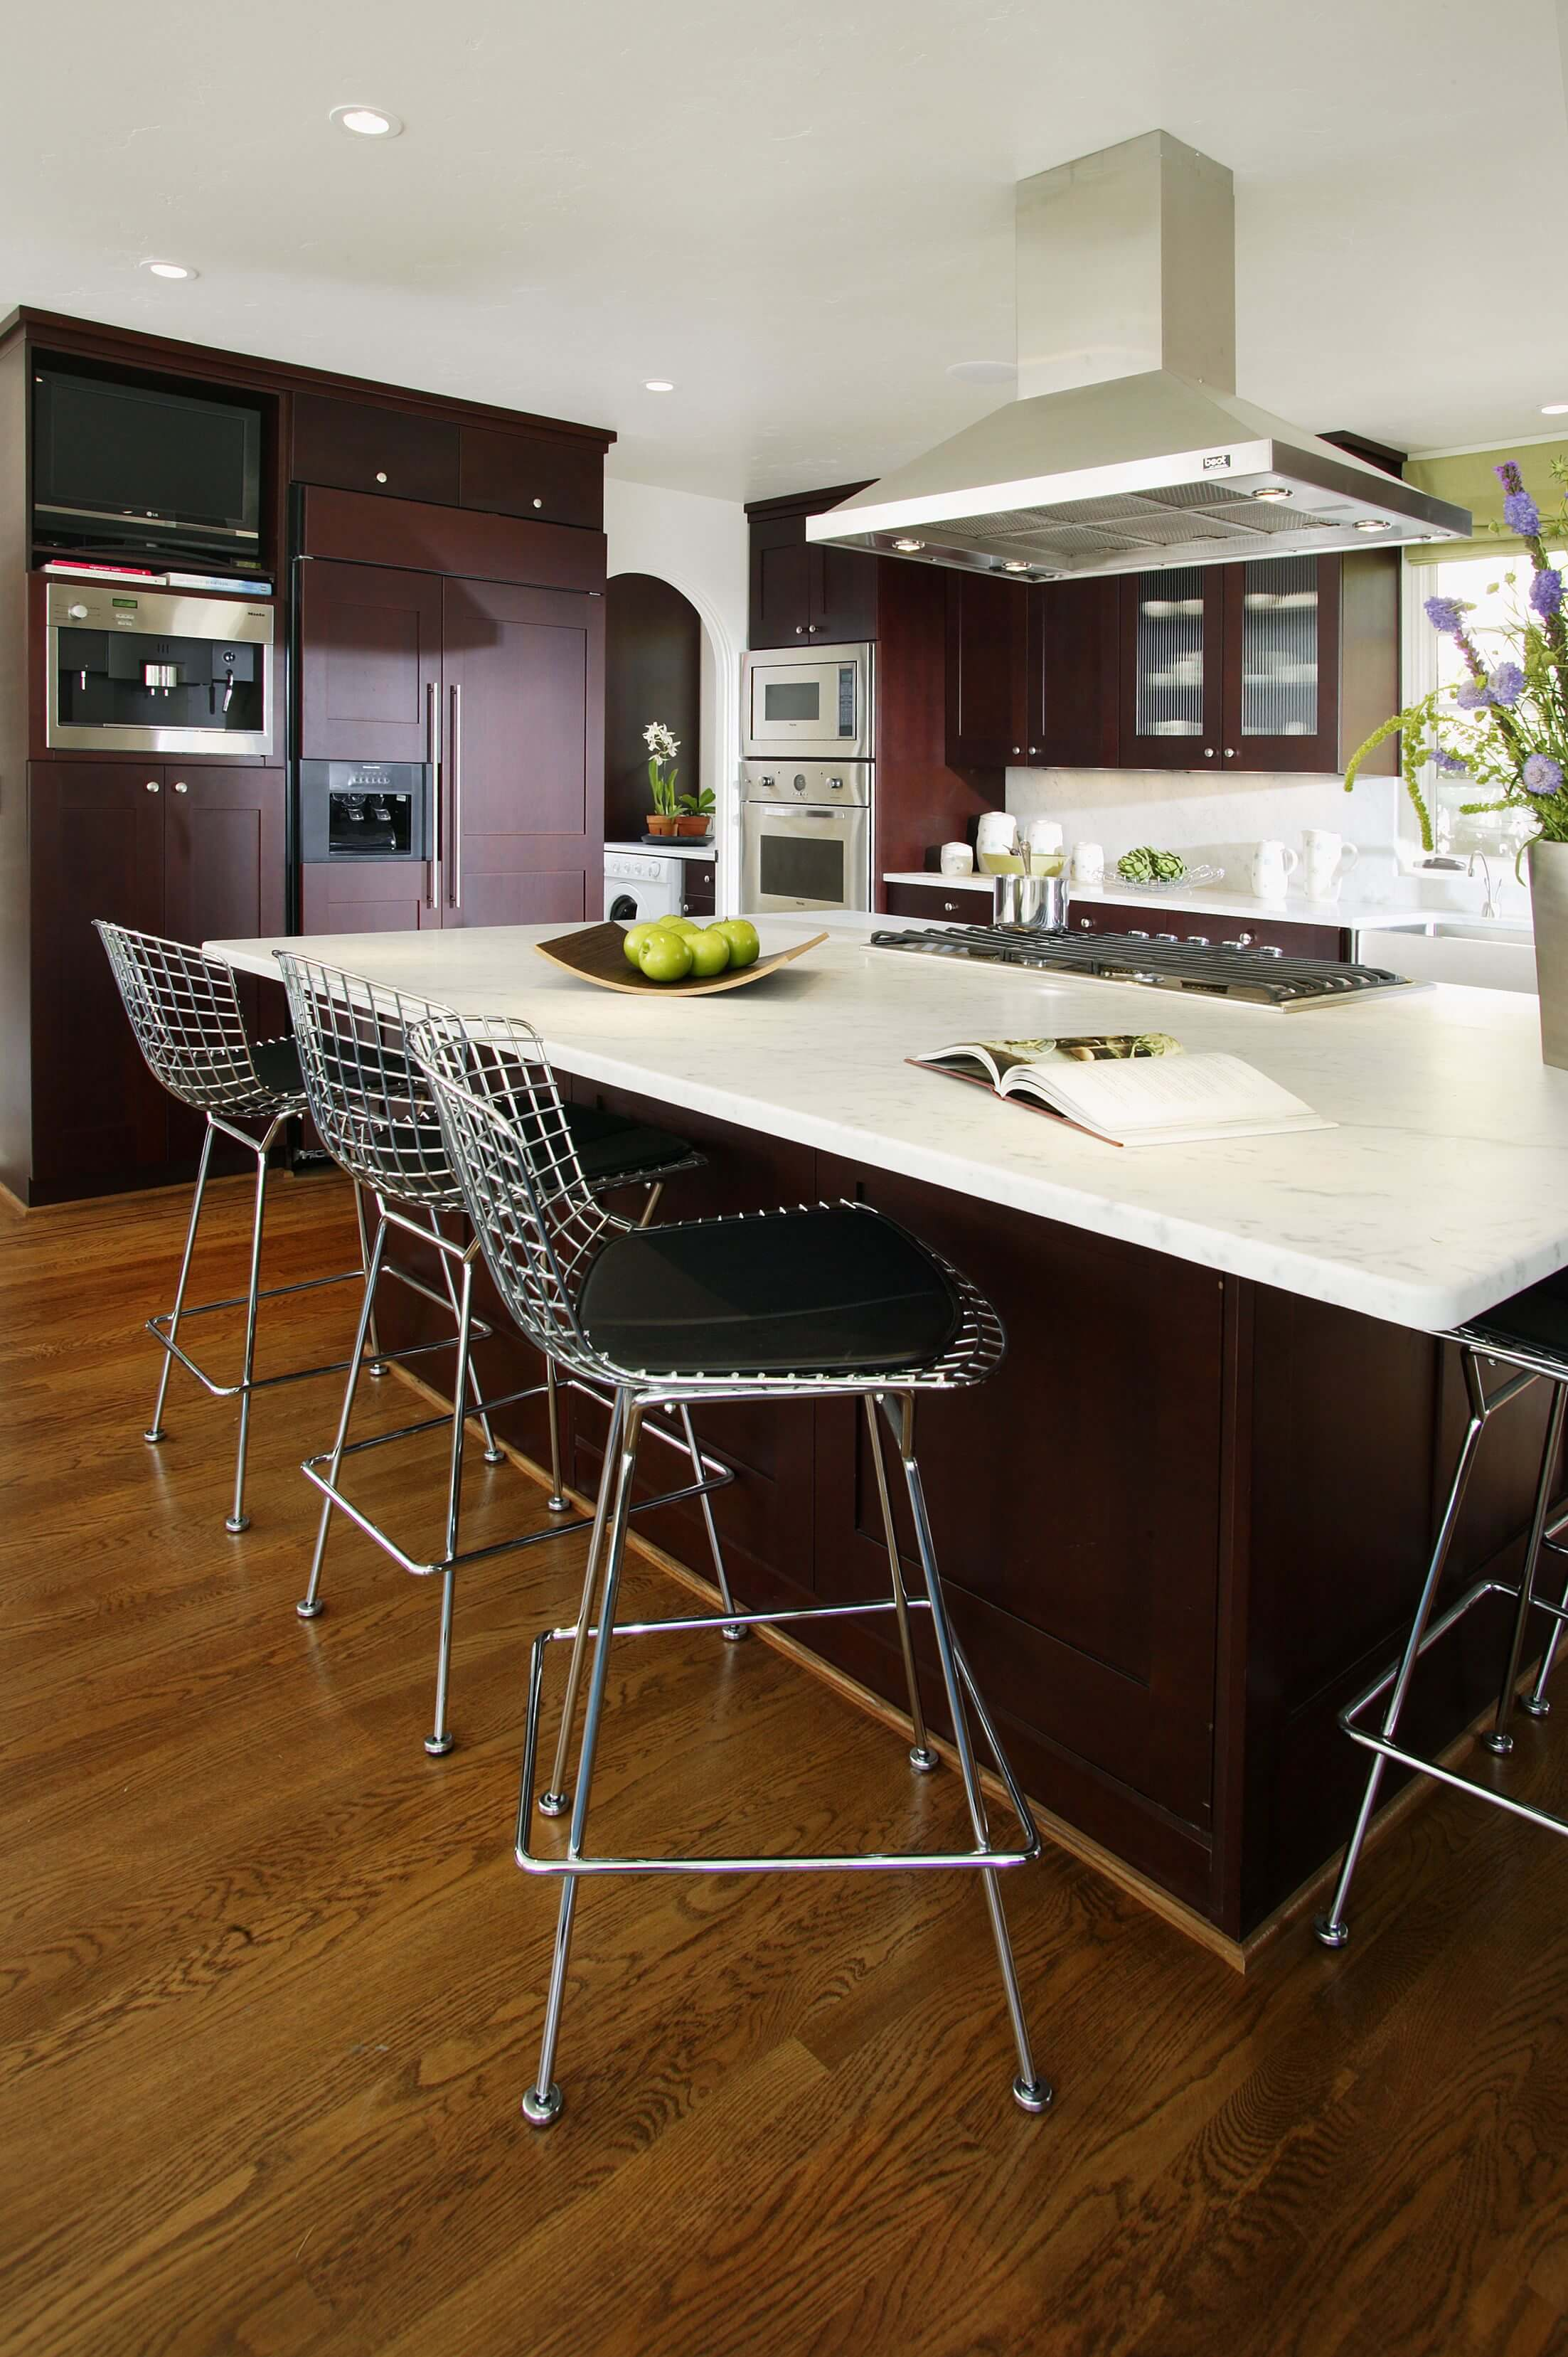 White Kitchens With Dark Wood Floors 52 Dark Kitchens With Dark Wood And Black Kitchen Cabinets